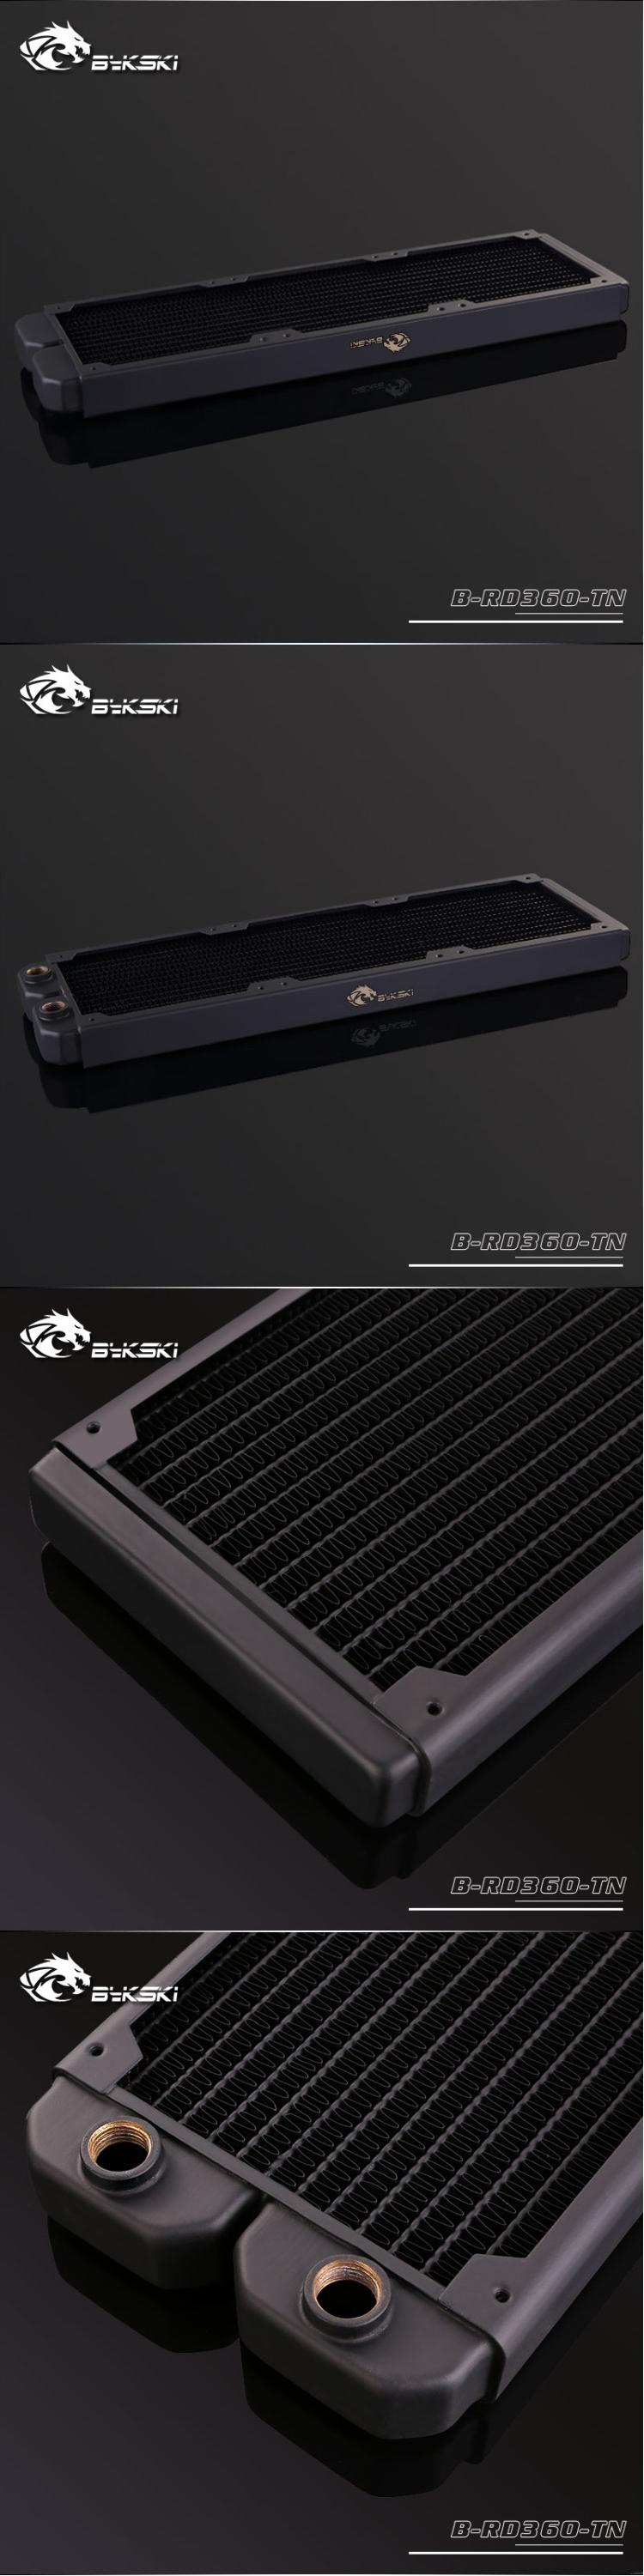 A large marketing image providing additional information about the product Bykski 360mm Radiator - Black - Additional alt info not provided